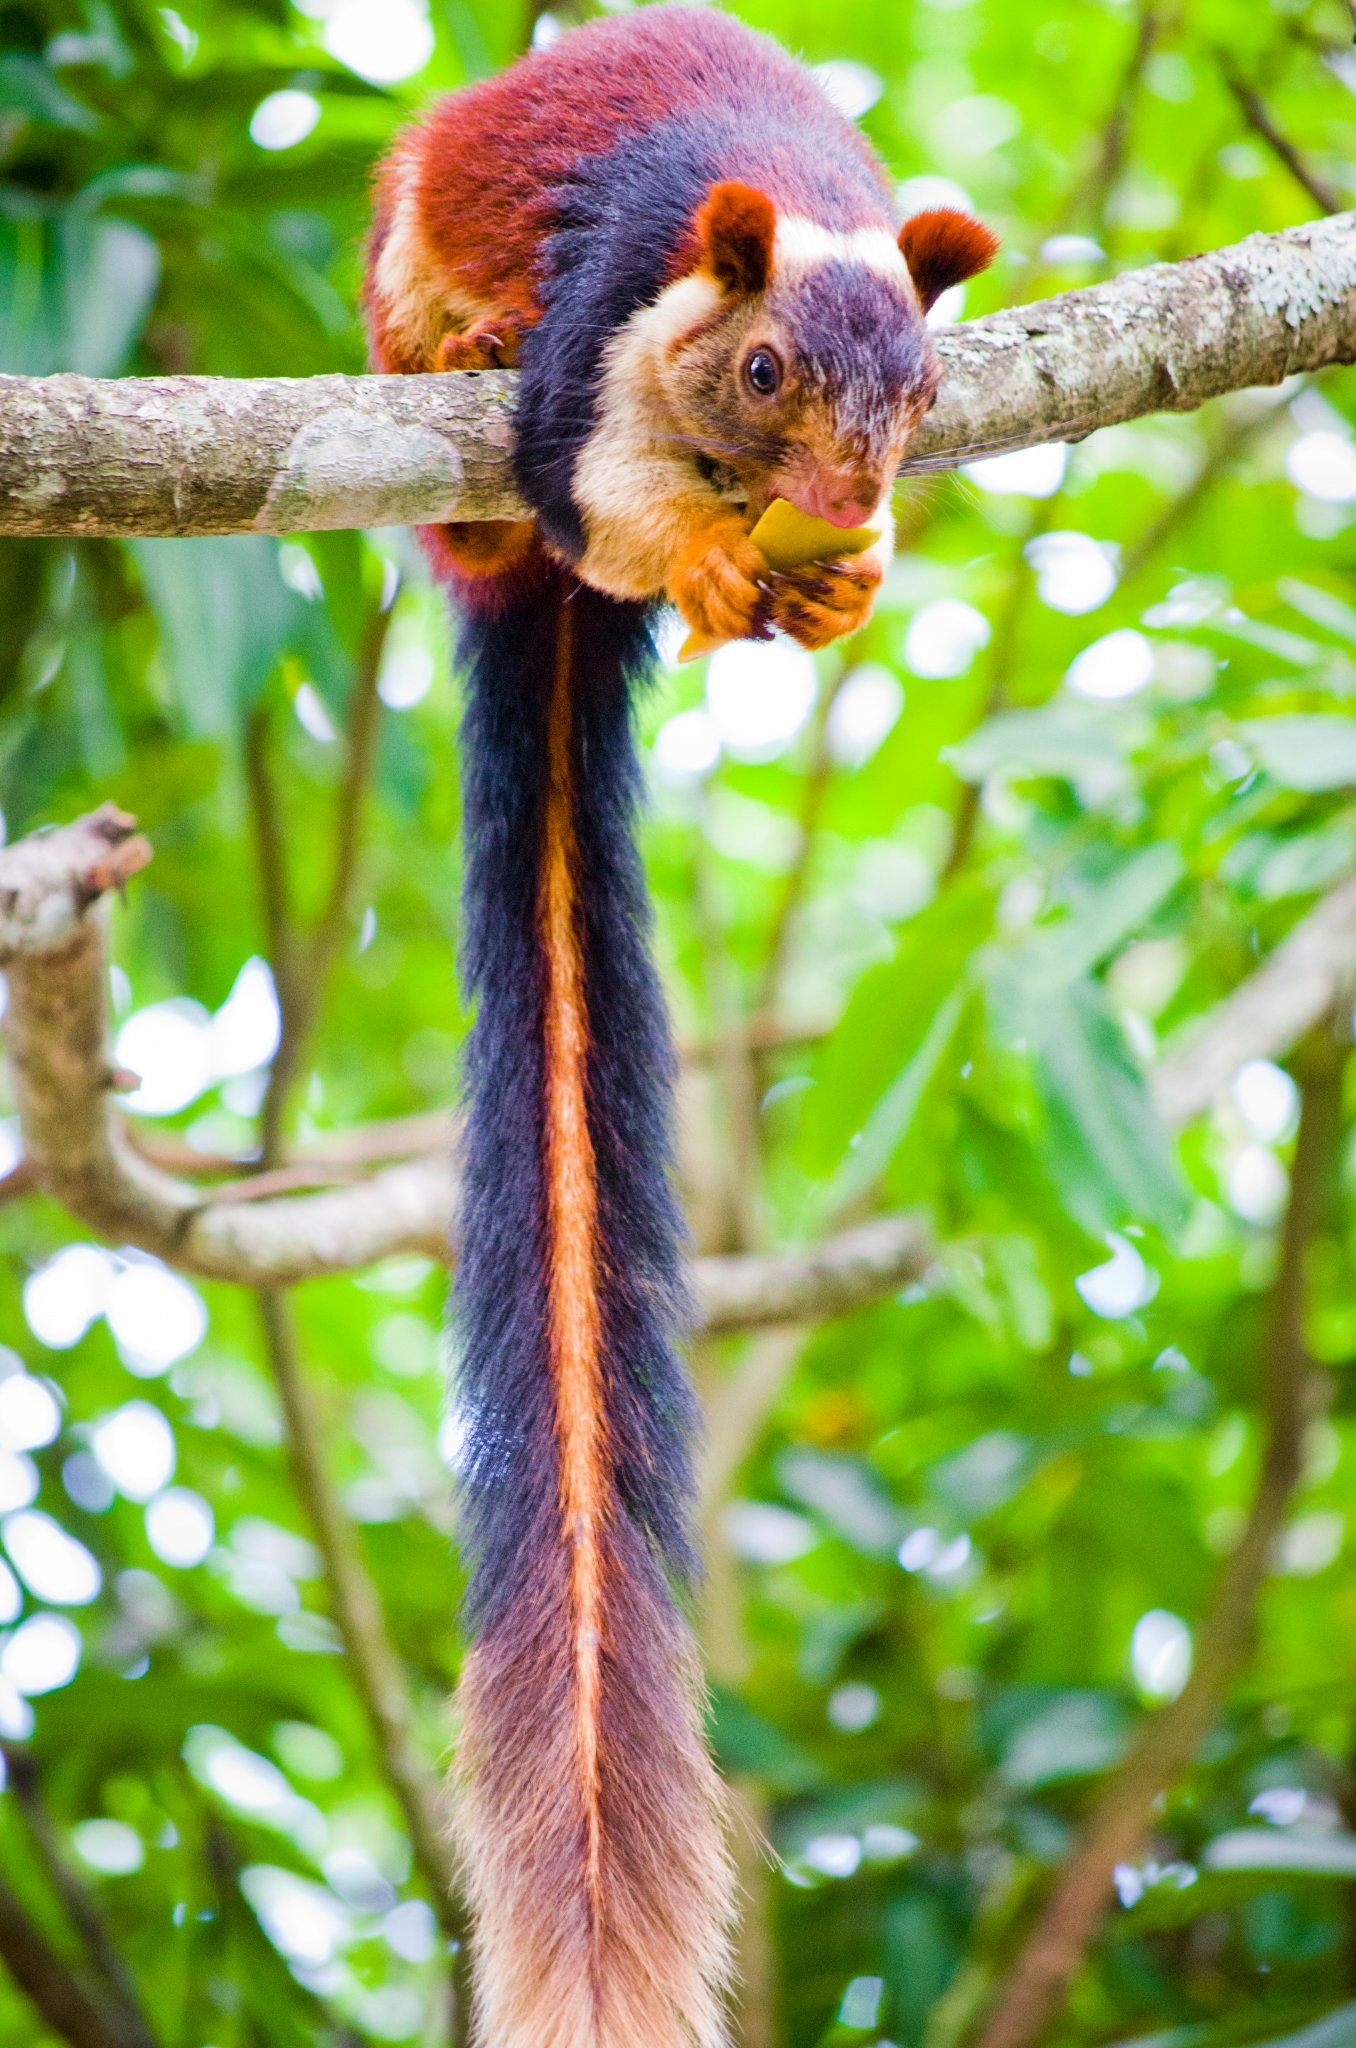 The Indian giant squirrel, or Malabar giant squirrel